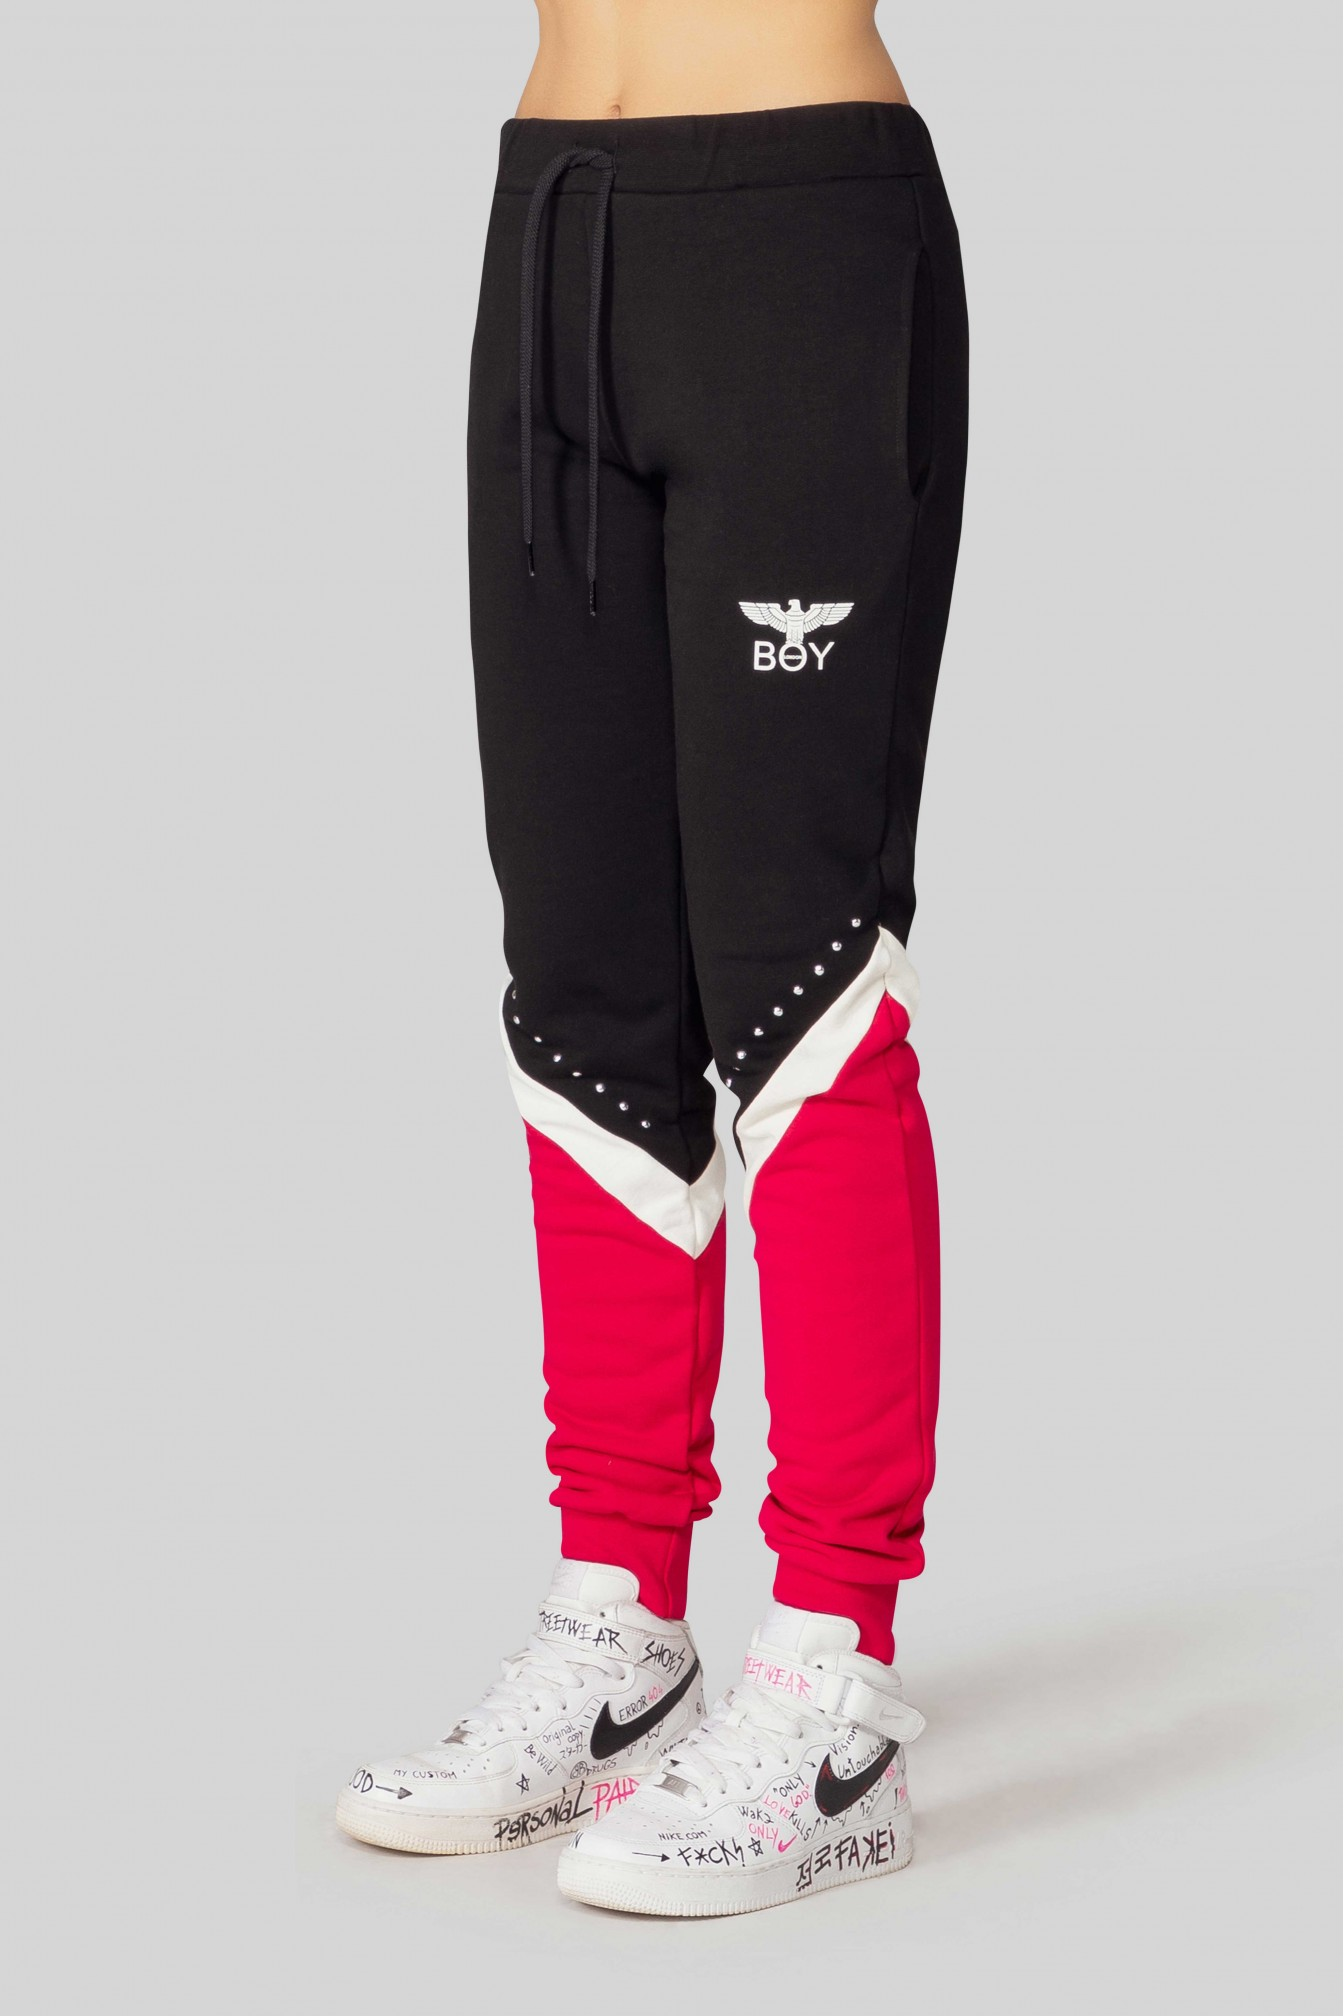 PANTALONE - BLD2692 - BOY LONDON